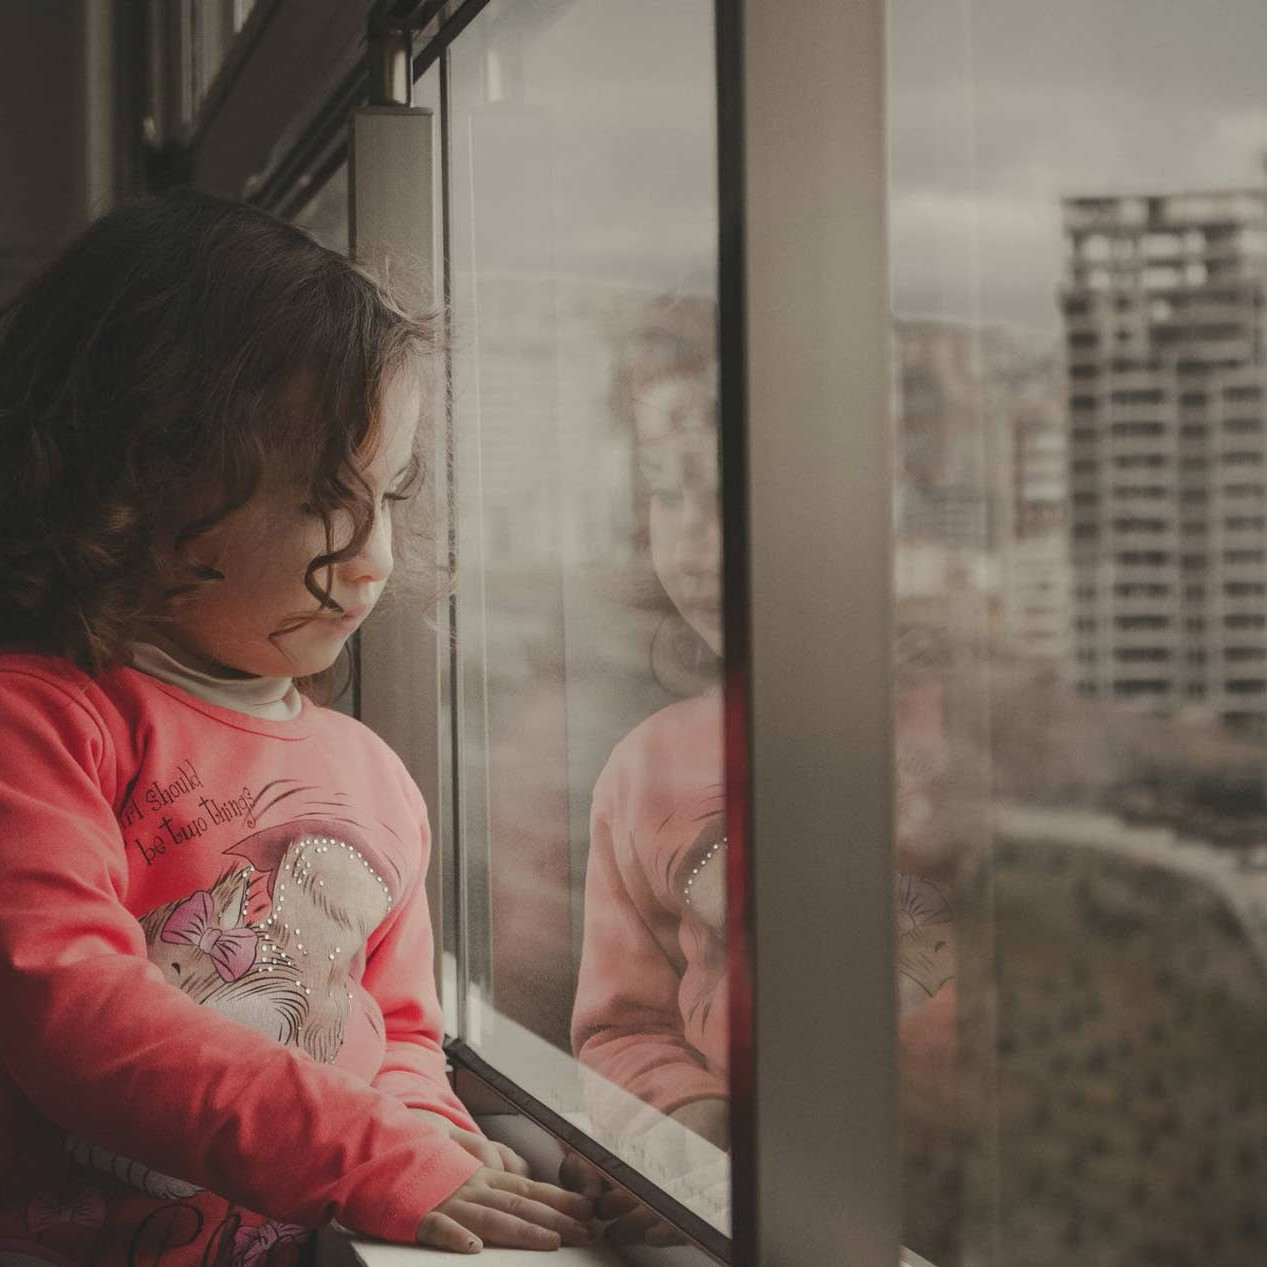 How to Take Care of my Child's Emotional Health in Times of A Pandemic